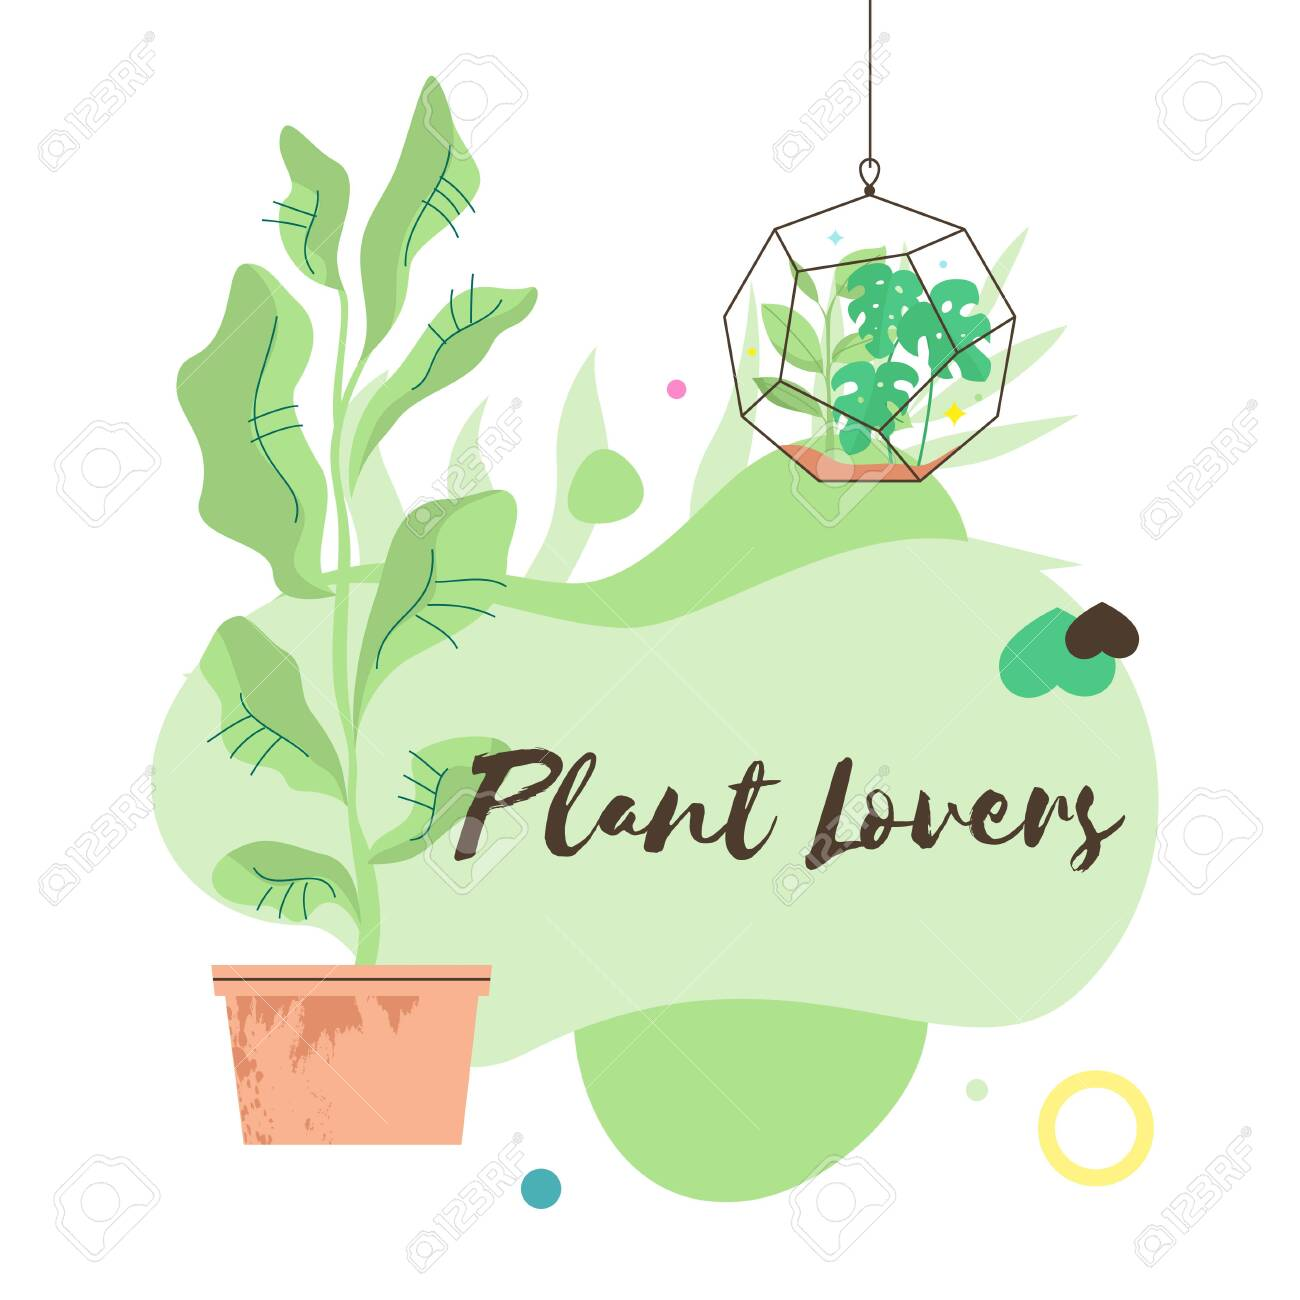 Terrarium In Linear Style Filled House Plants Indoor Garden Royalty Free Cliparts Vectors And Stock Illustration Image 140517500